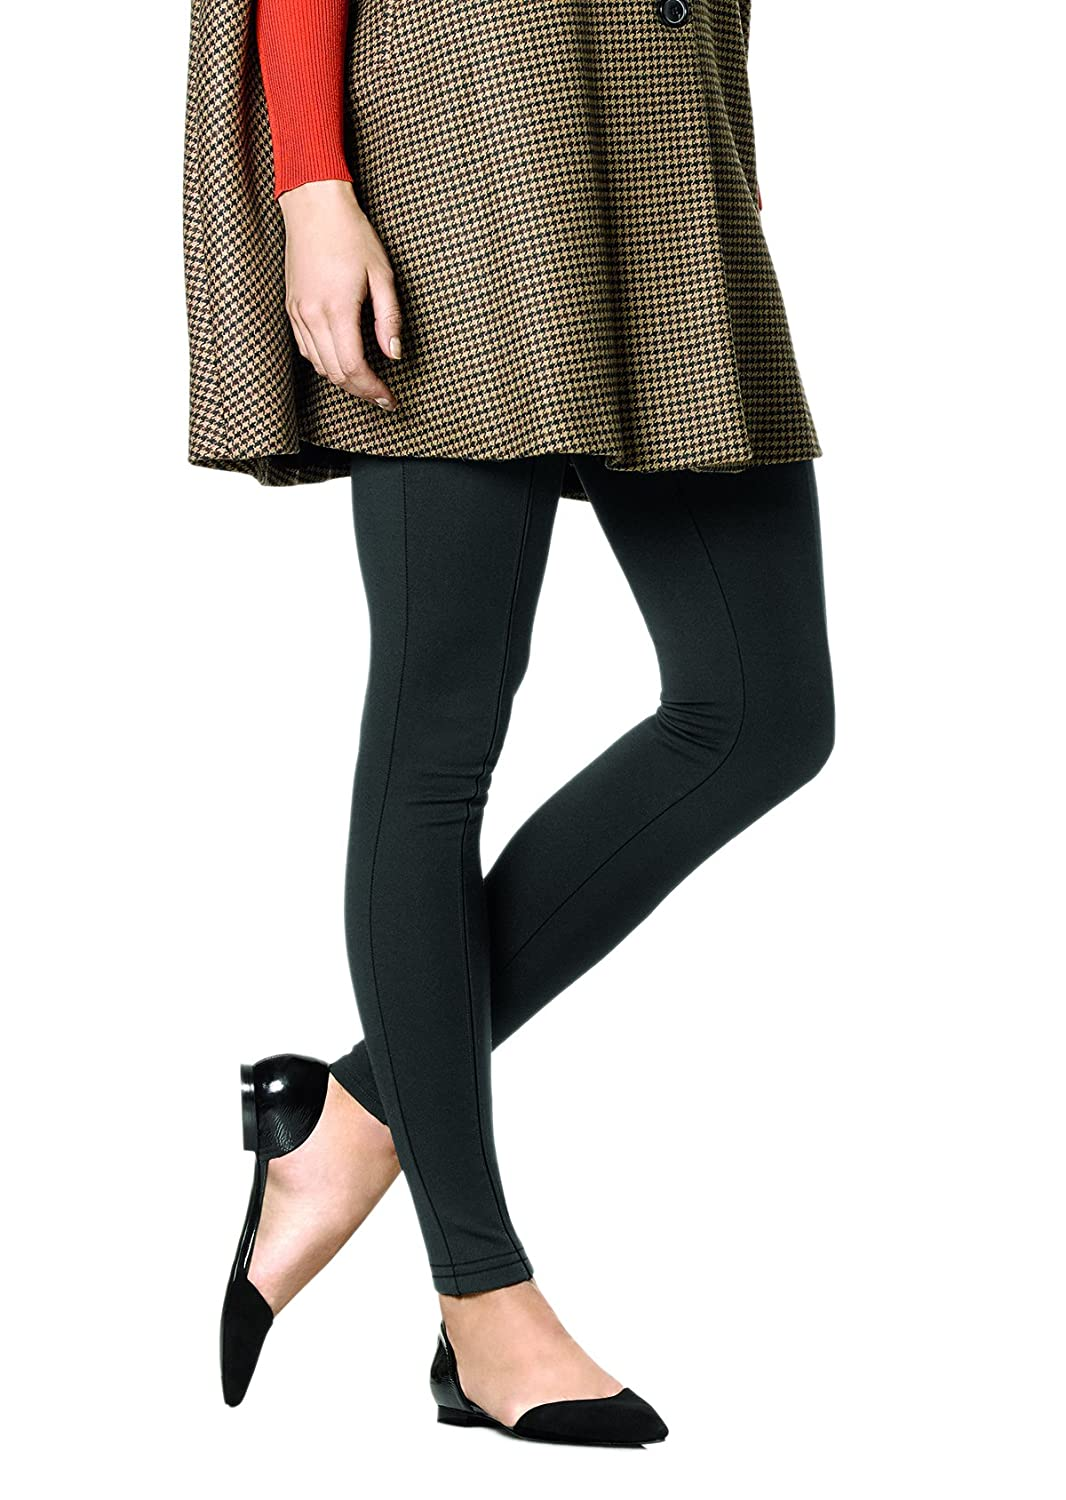 c6db330fddb14 85%OFF Hue Fleece Lined Ponte Legging - url.ellen.li